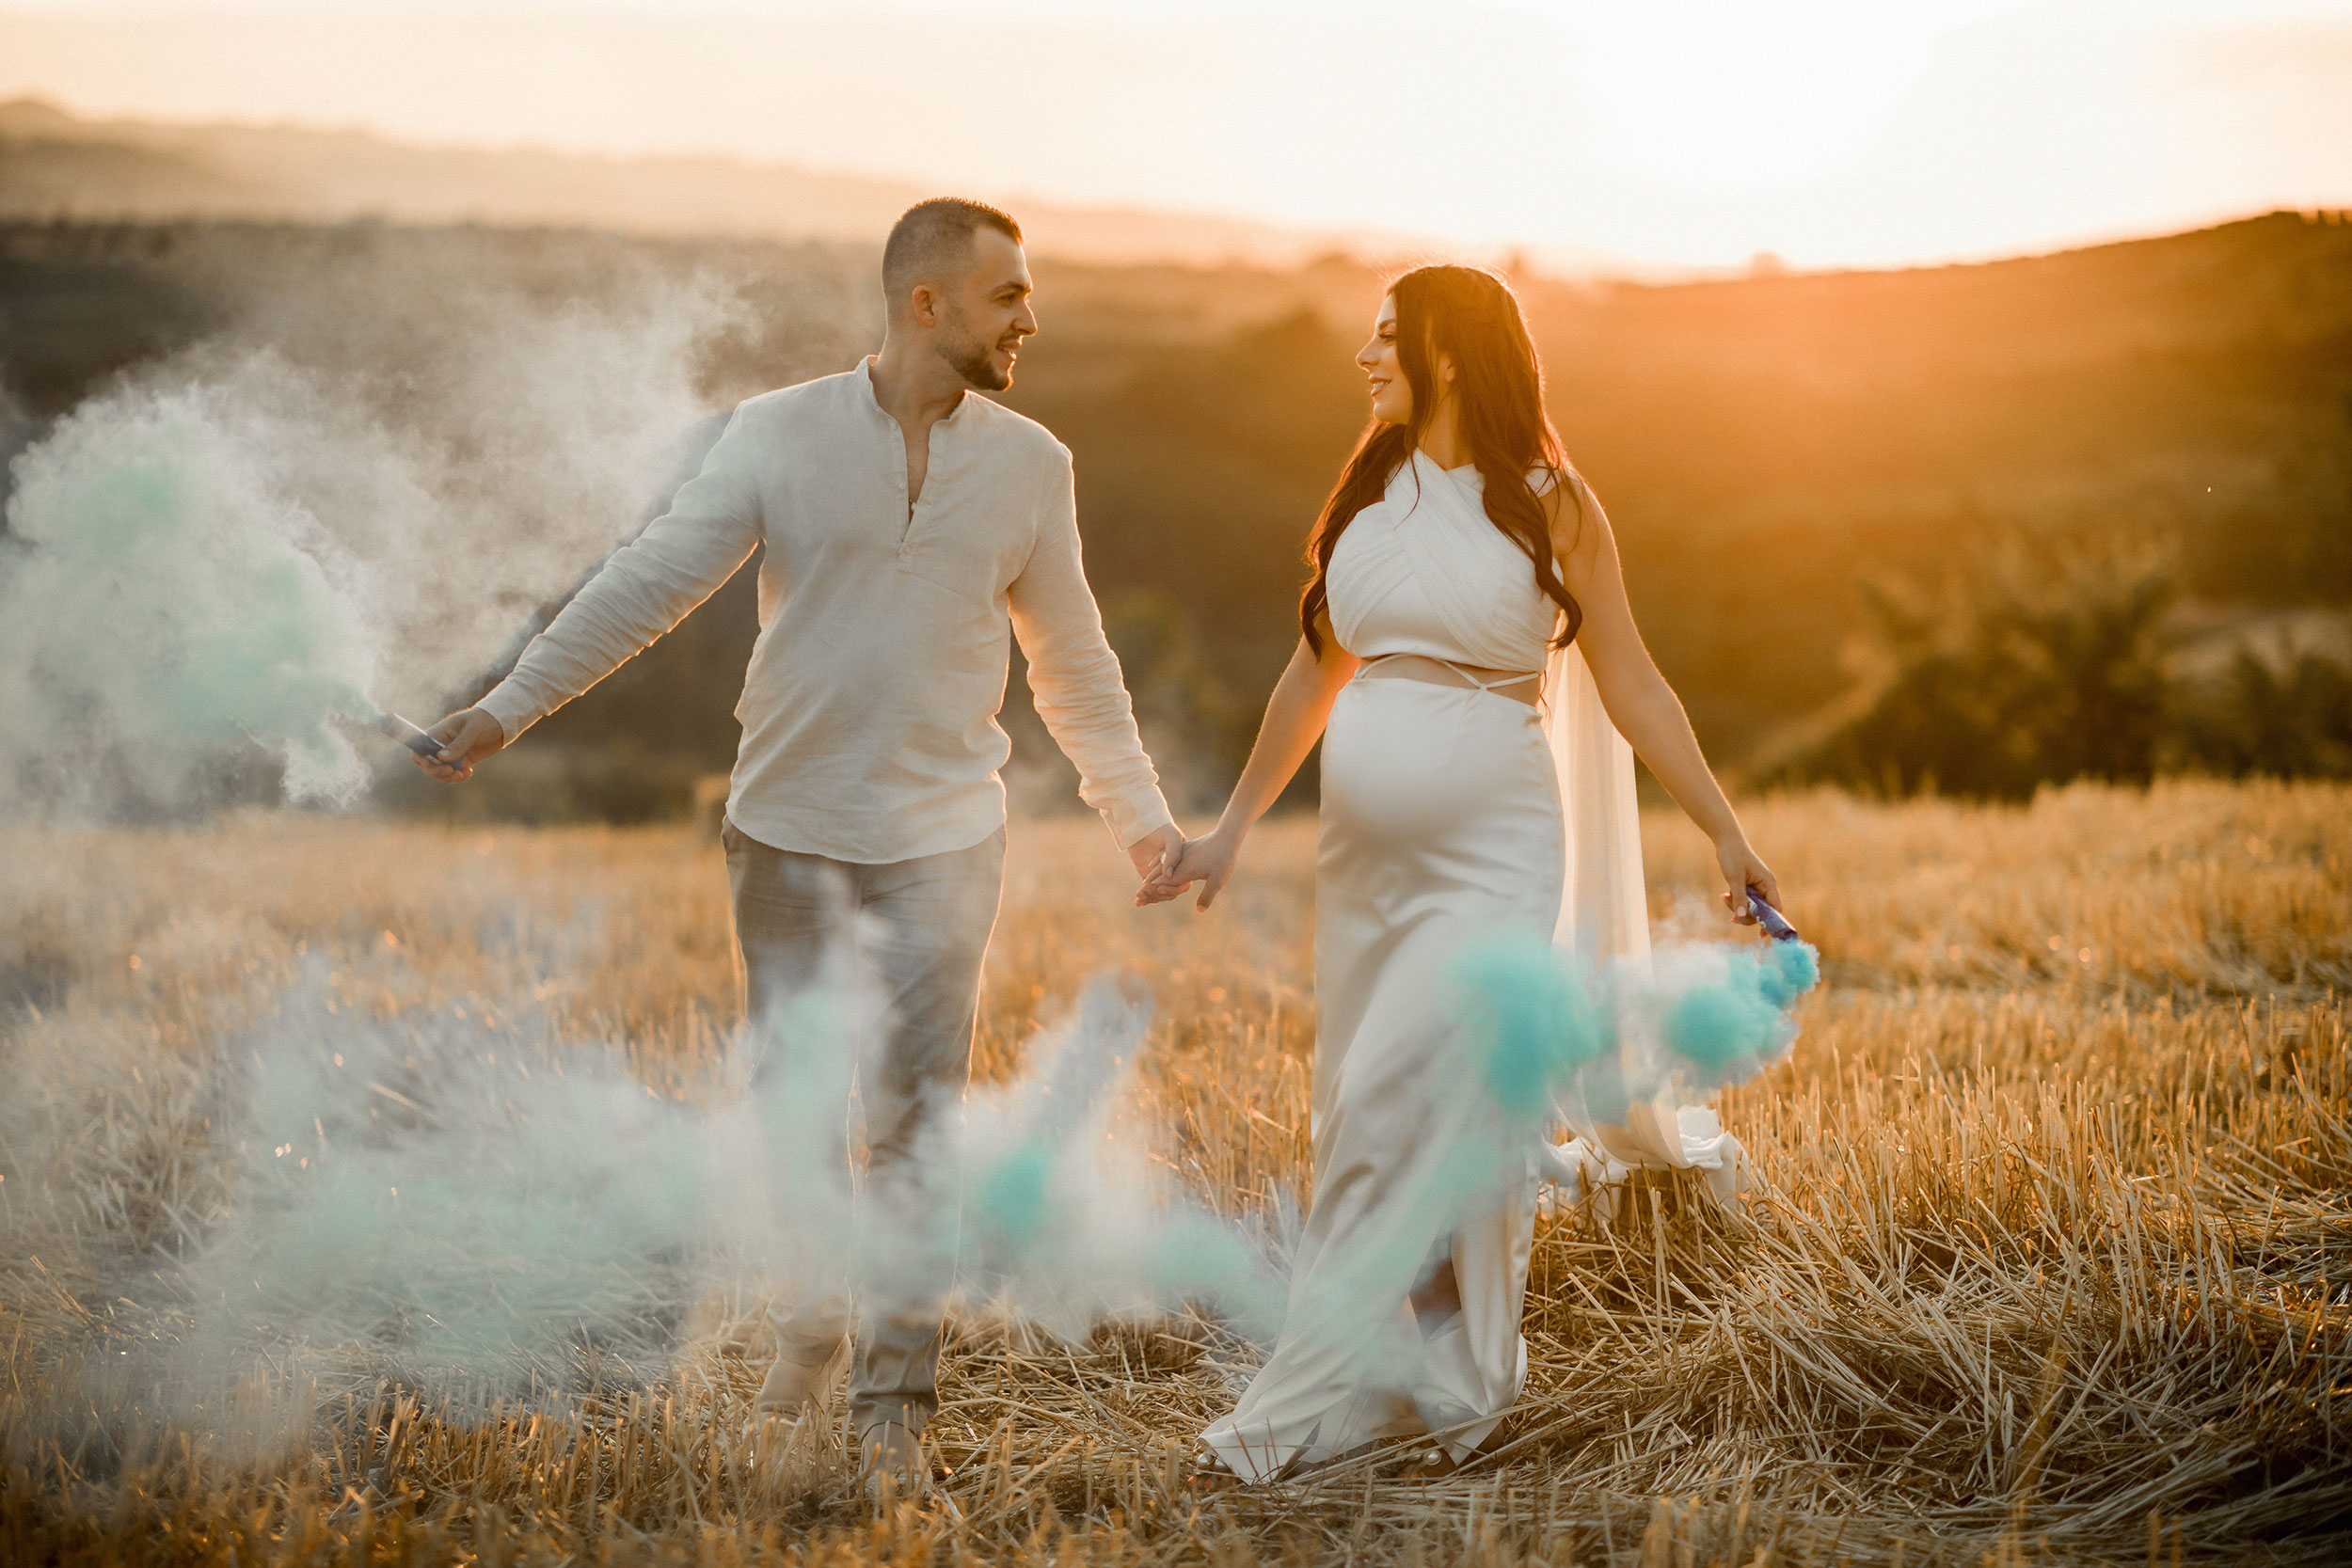 Parents to be finding out it's a boy